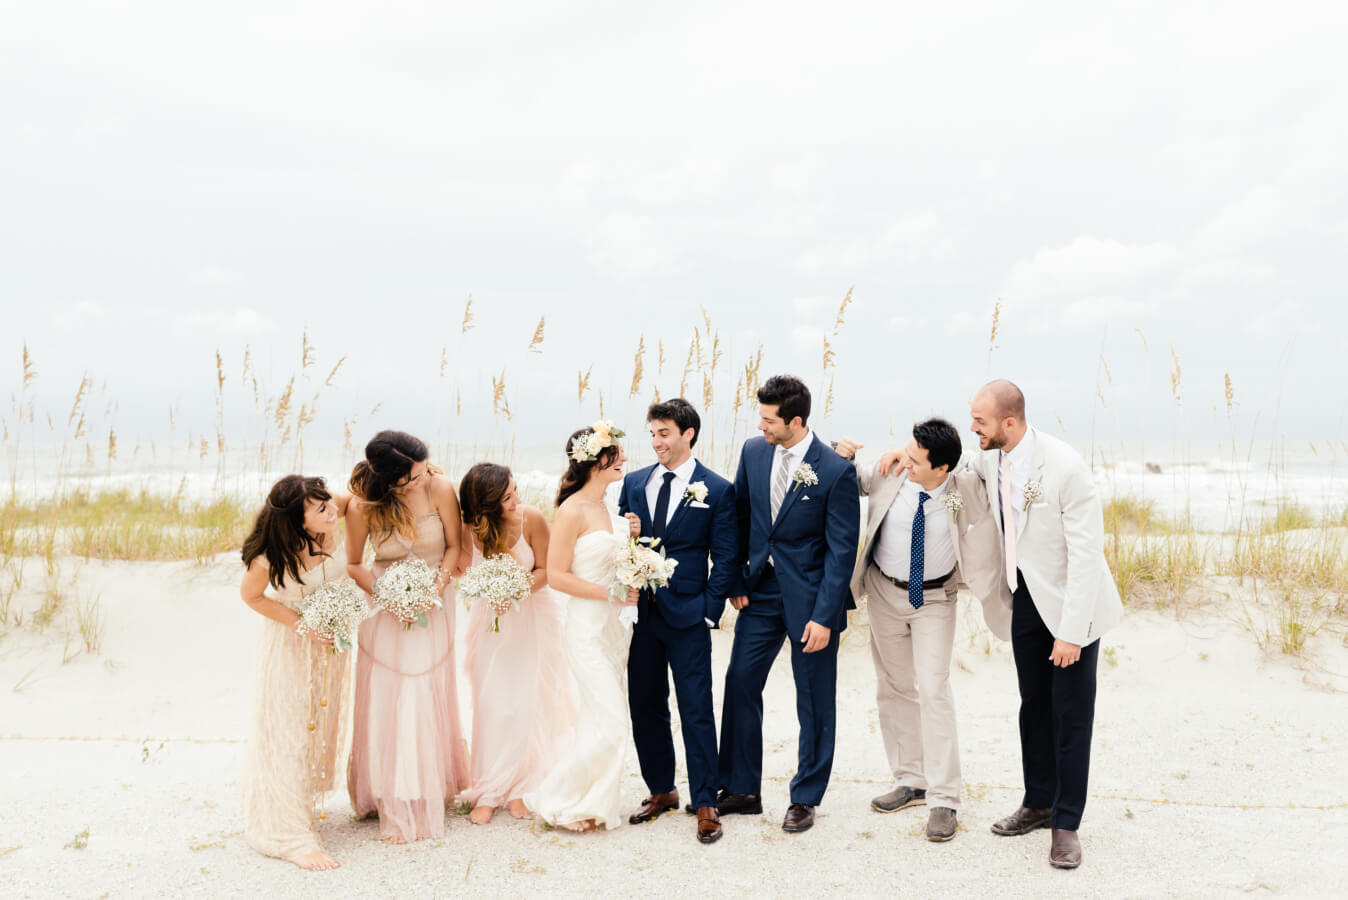 Groom, brie and frineds on the beach